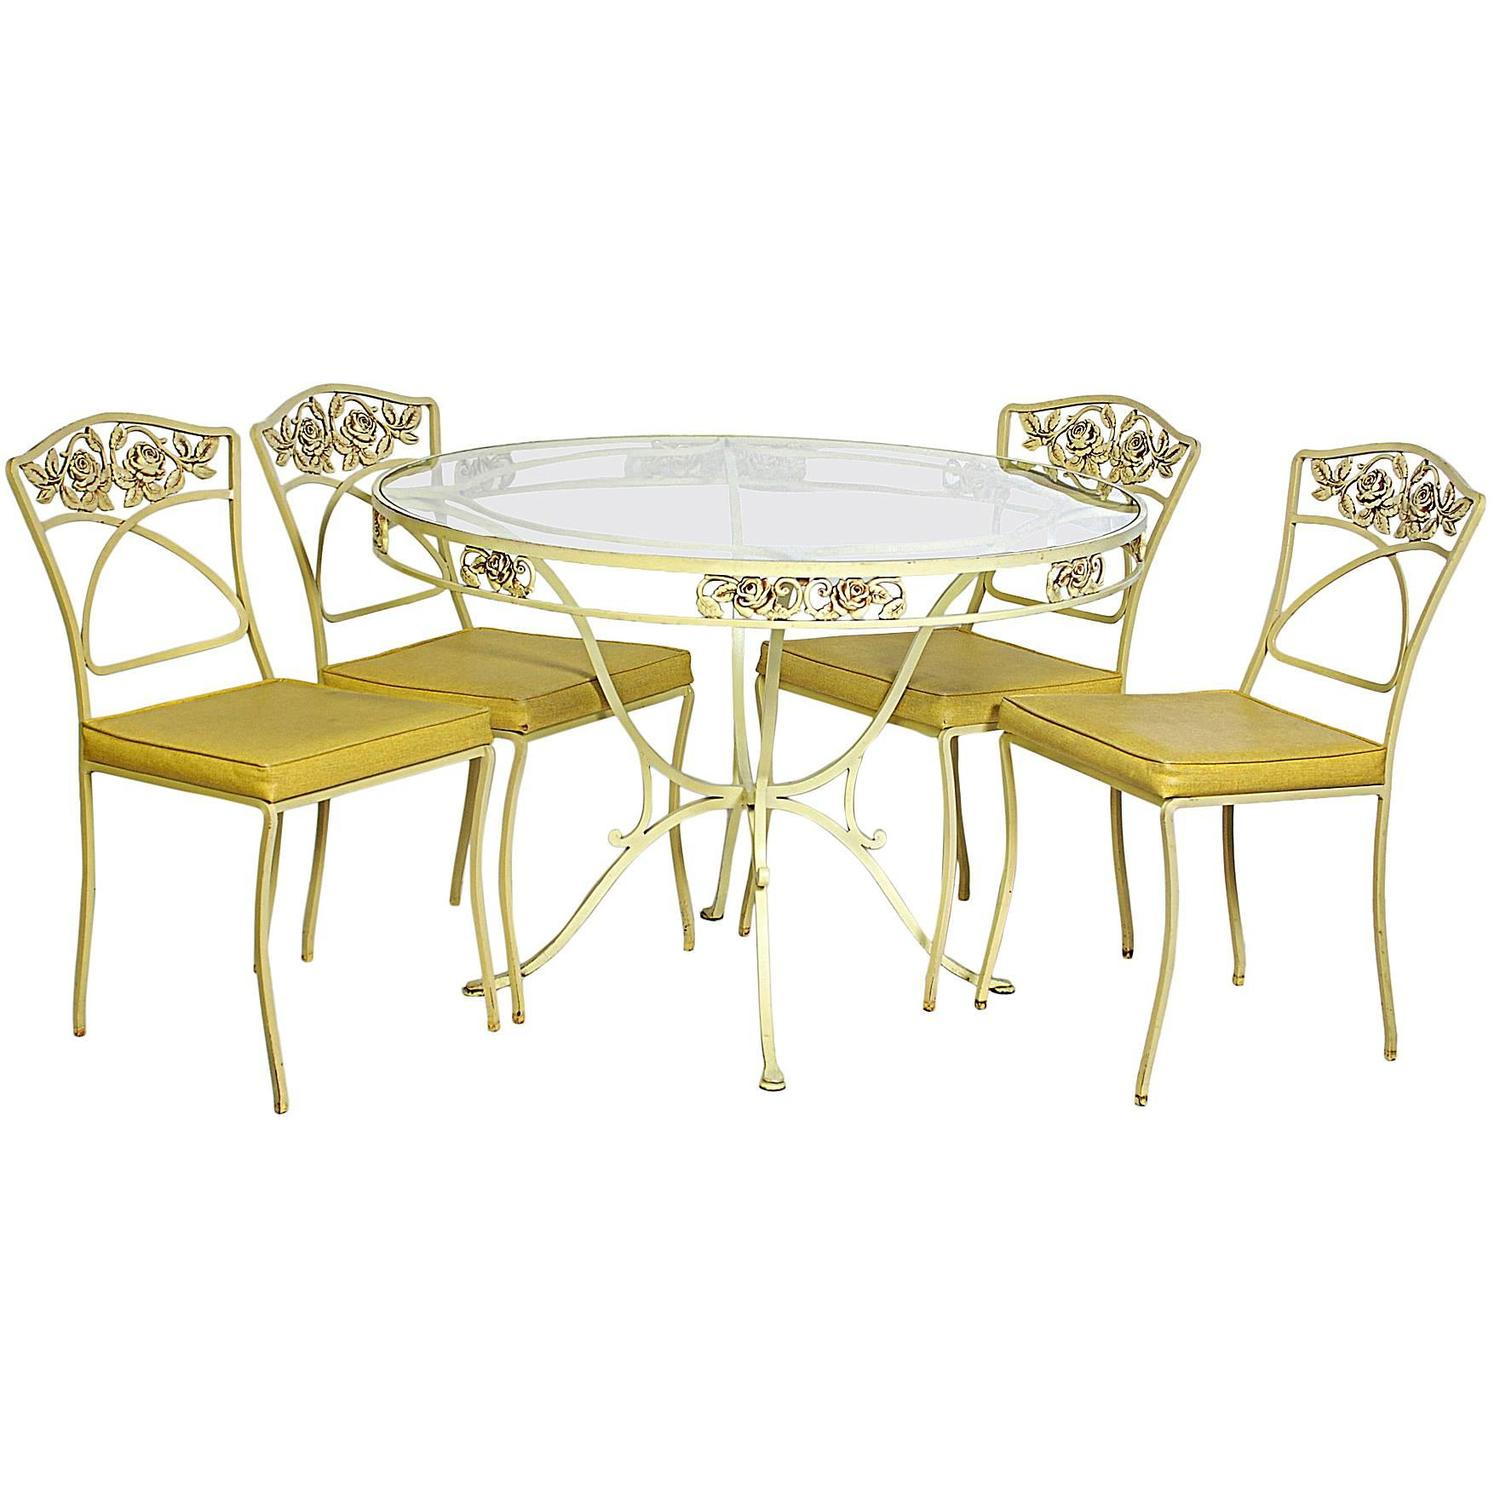 Five-Piece Salterini Wrought Iron Dining Set For Sale at ...